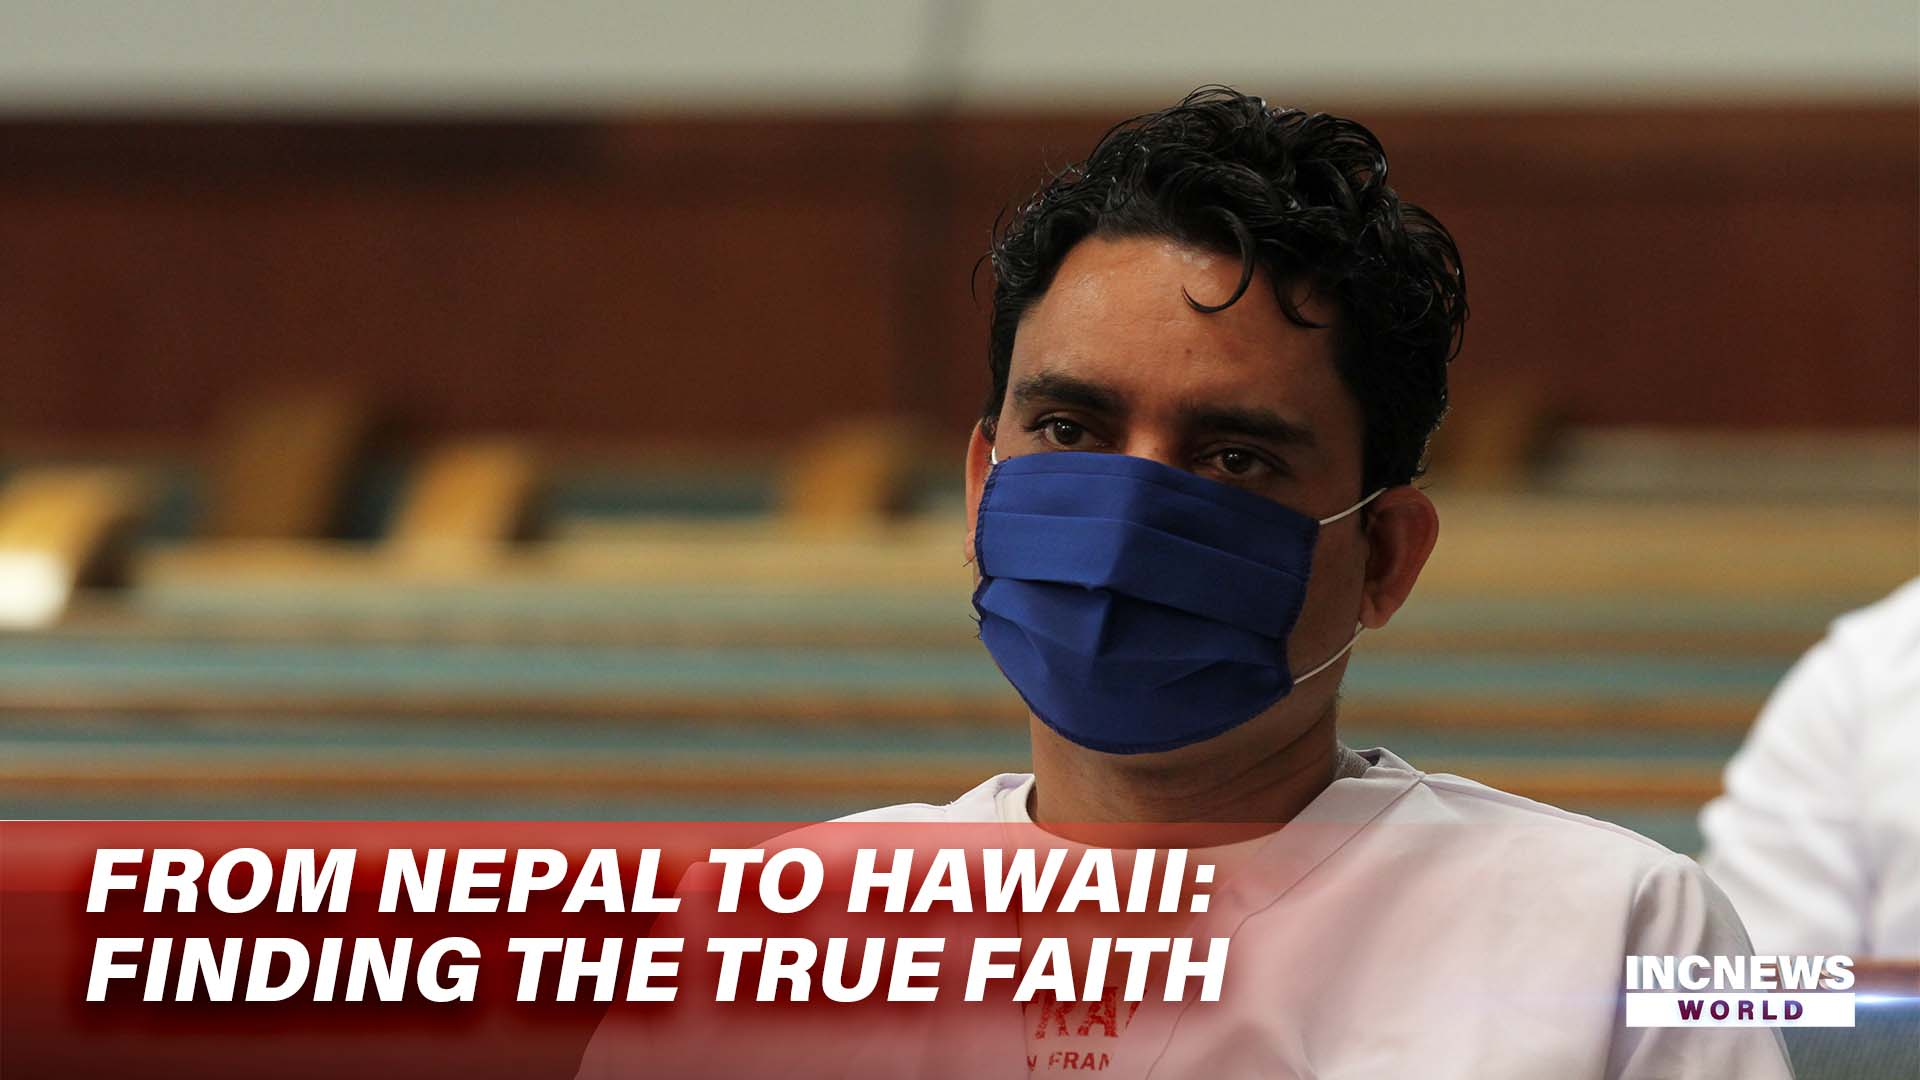 From Nepal To Hawaii: Finding the True Faith